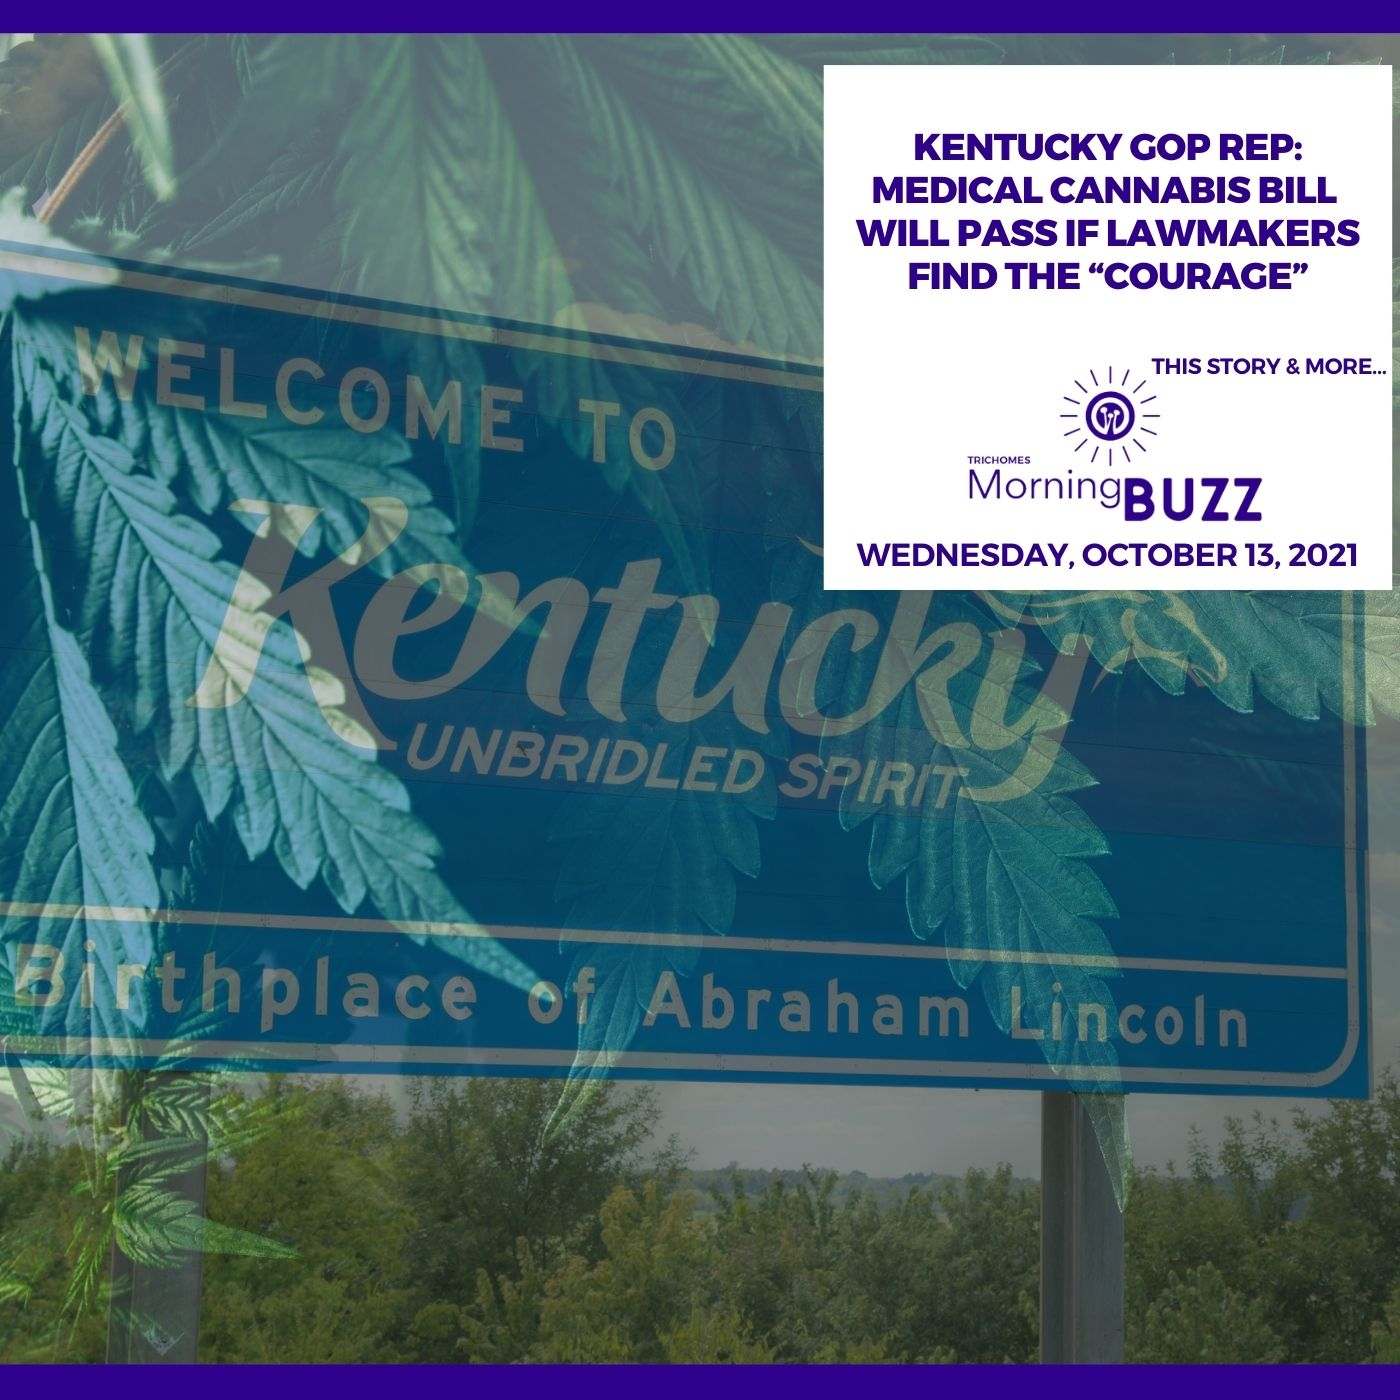 """Kentucky GOP Rep: Medical Cannabis Bill Will Pass If Lawmakers Find The """"Courage"""" show art"""